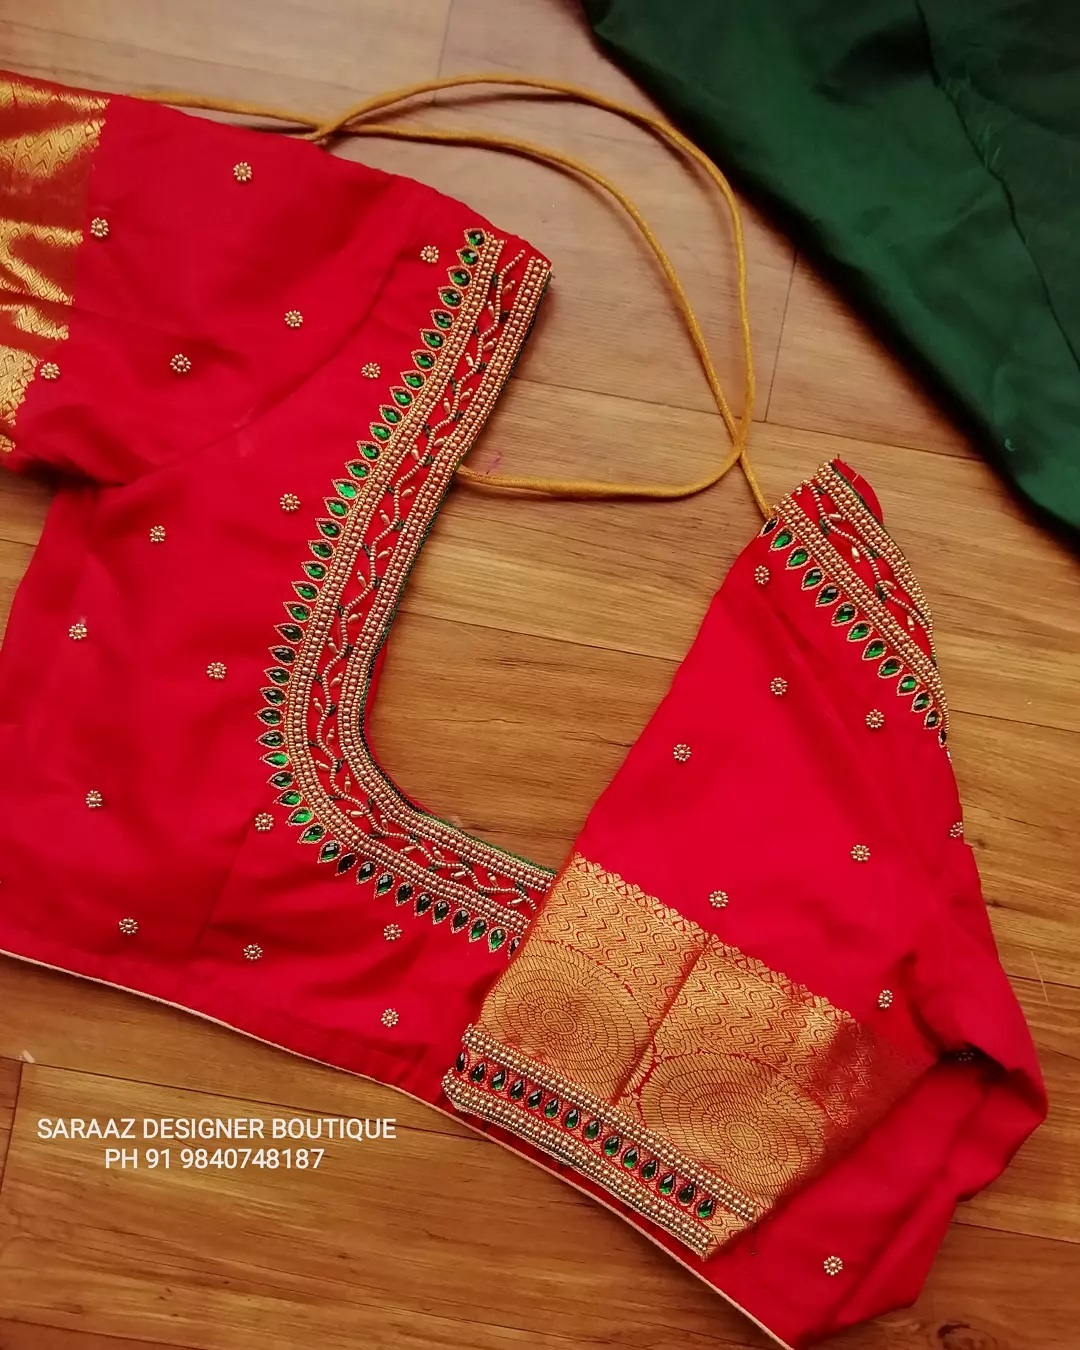 Elegant simple aari work blouse . To get your blouse customised call  at 91 9840748187 . 2021-09-15